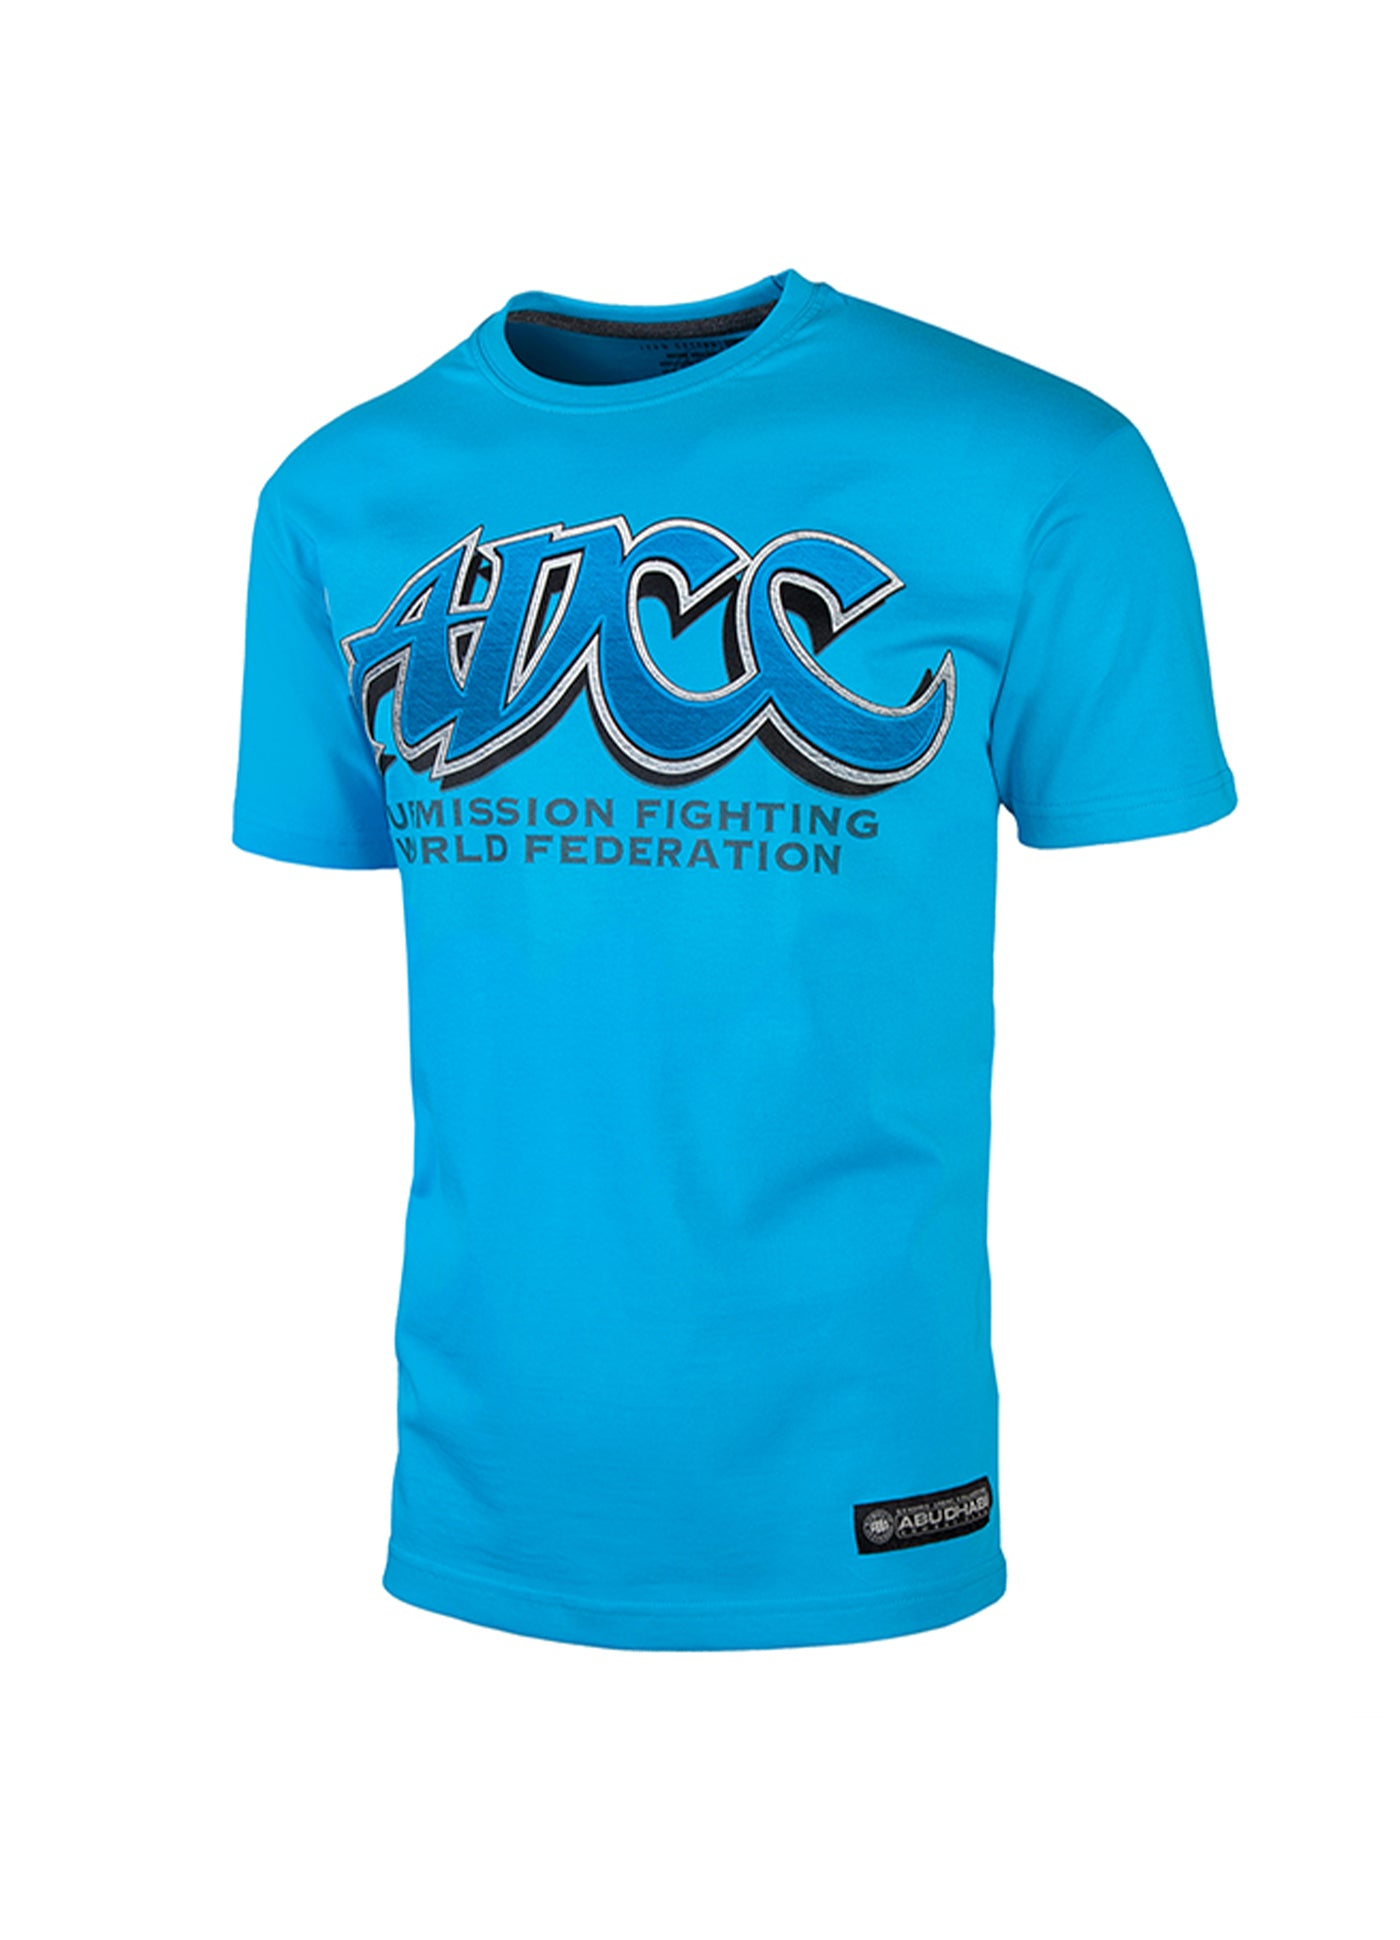 Official ADCC T-Shirt Blue - Pitbull West Coast  UK Store